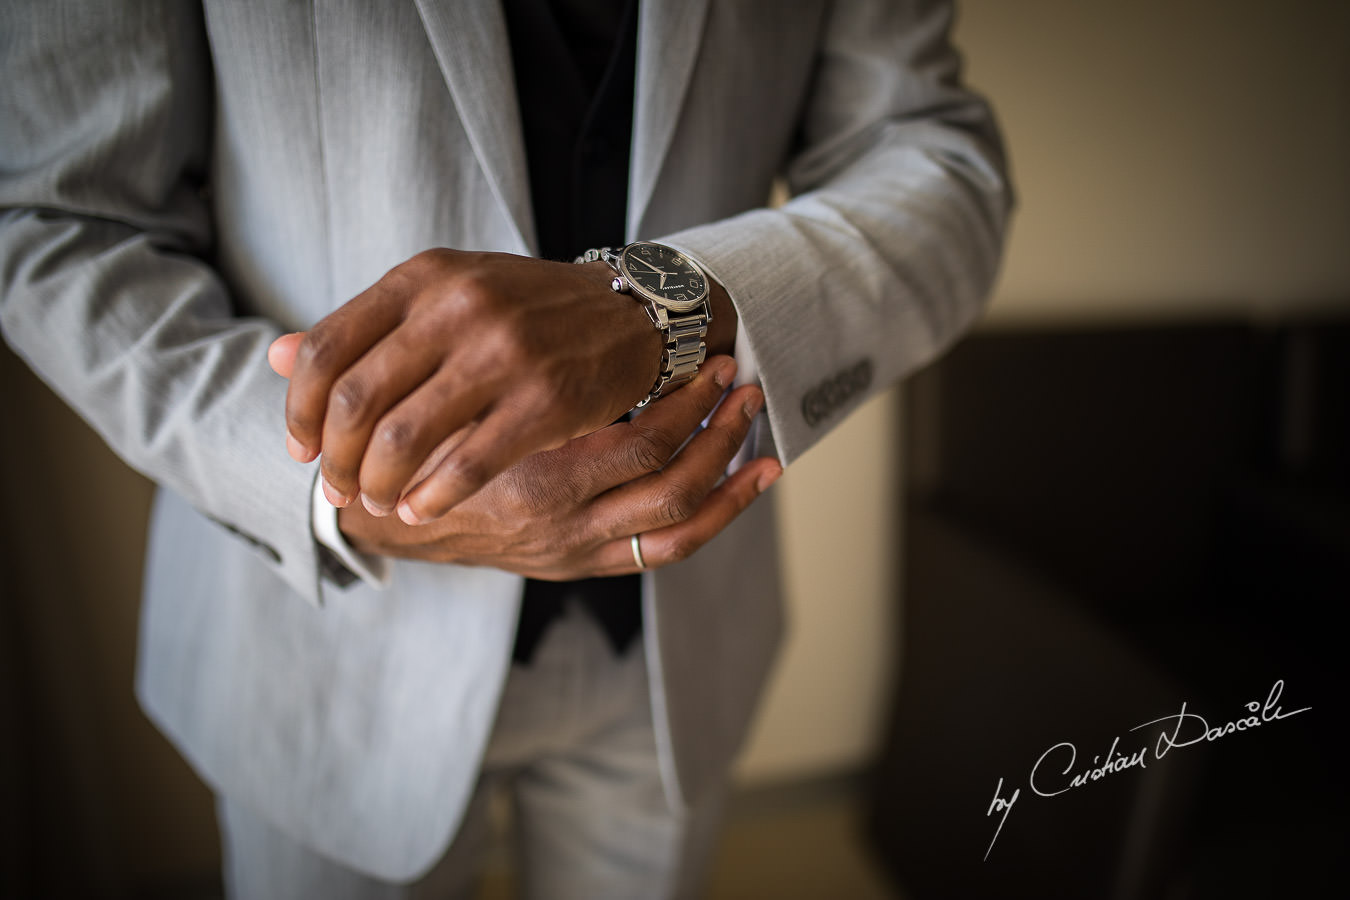 Groom closing his watch captured during an Exquisite Wedding at Asterias Beach Hotel by Cyprus Photographer Cristian Dascalu.